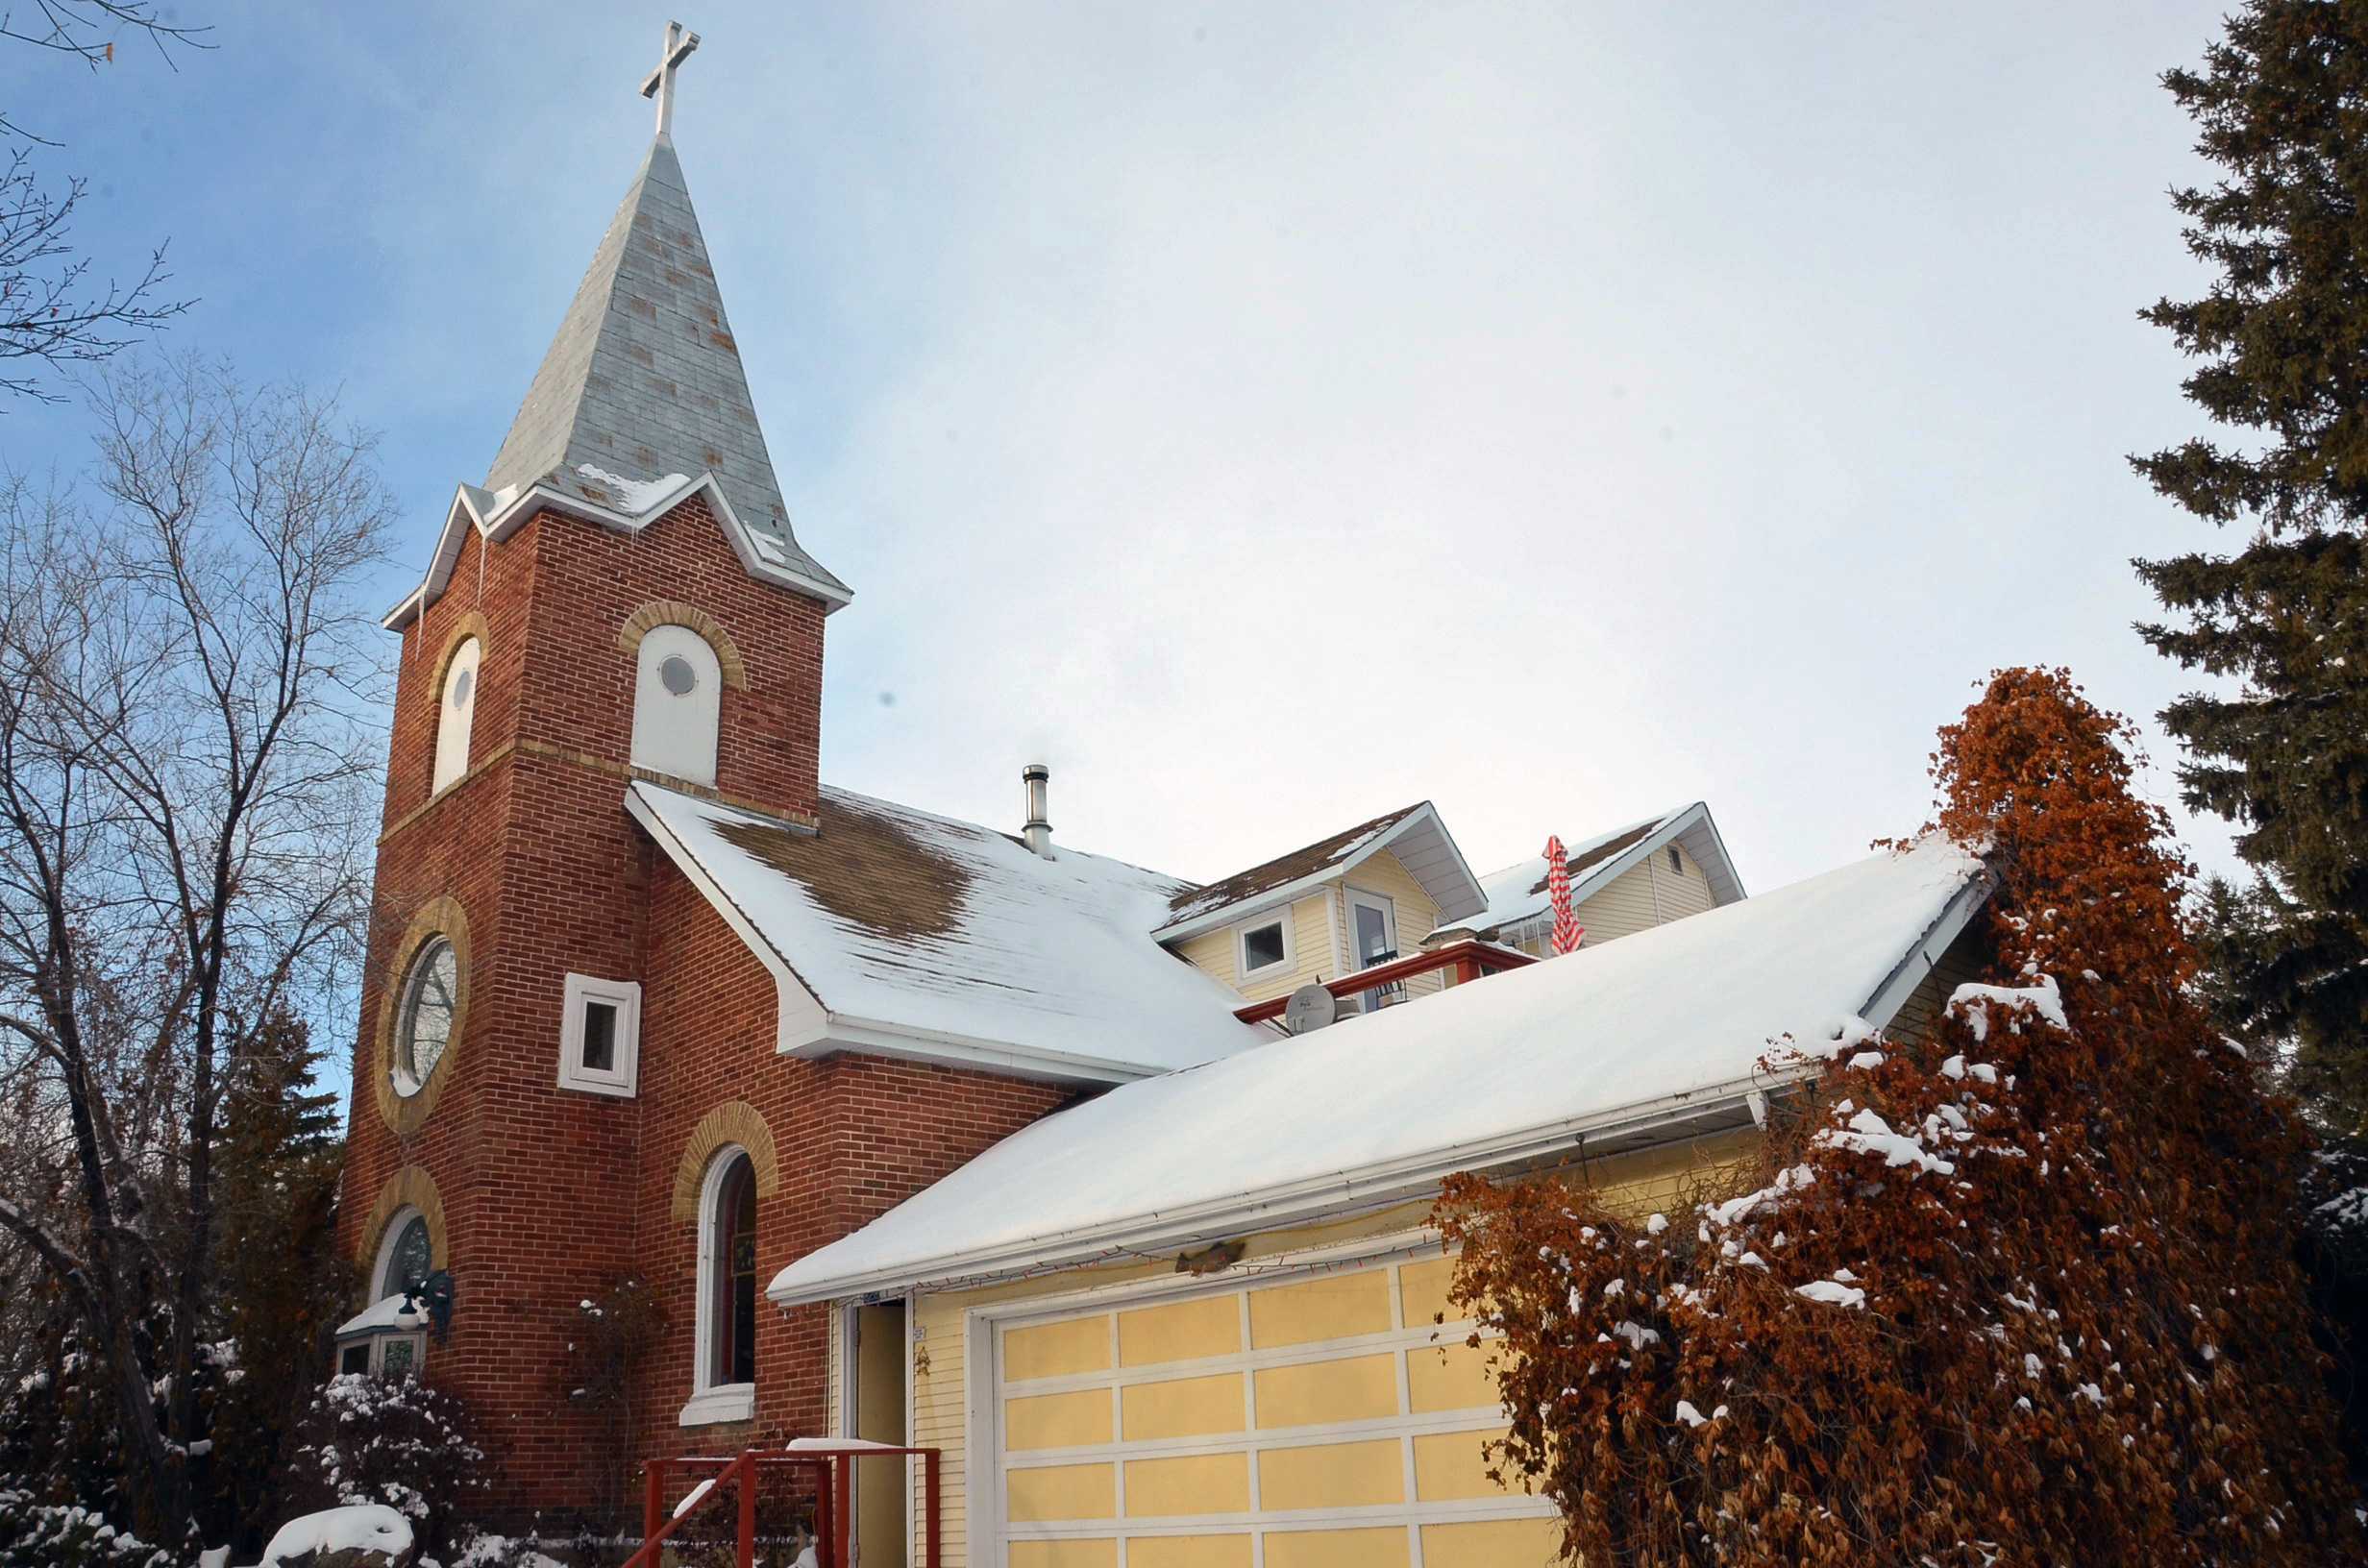 Mel Bolen bought this church in 1974, after it was decommissioned. (Bridget Yard/CBC)